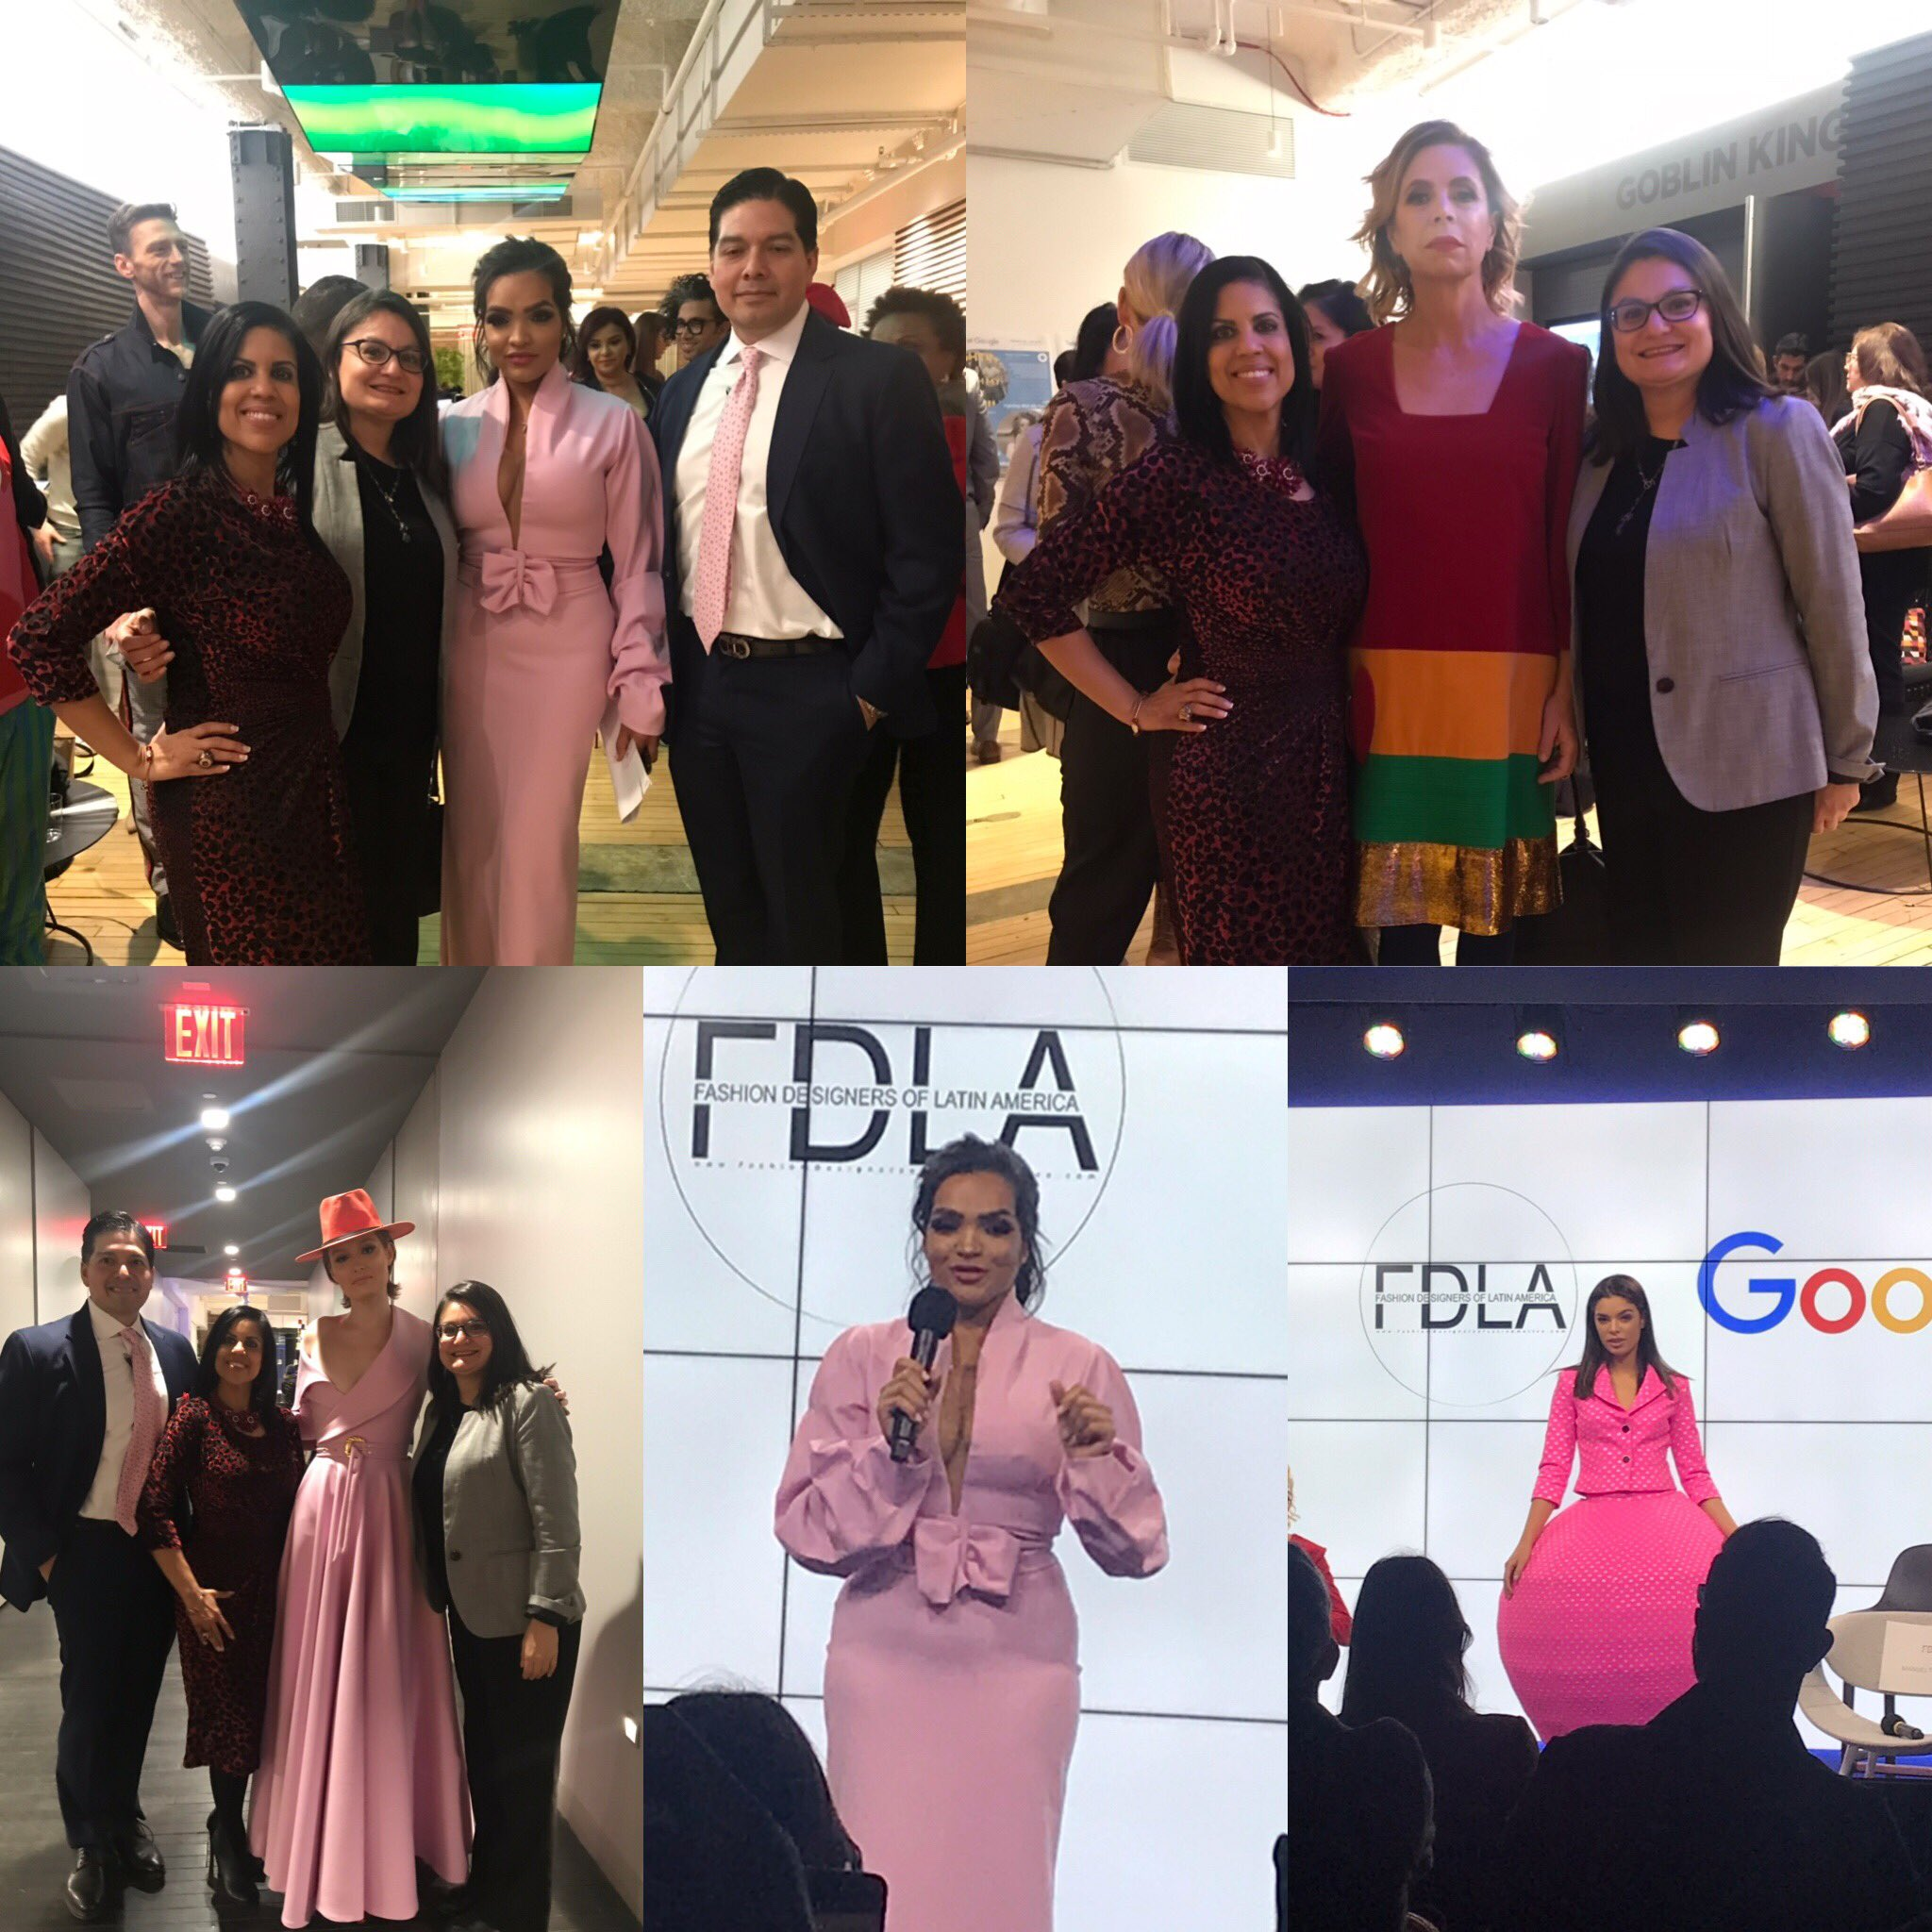 Beth Marmolejos On Twitter Attending The Fashion Designers Of Latin America Fashion Show Kick Off Event At Google Supporting Albania Rosario The Founder And Creator Of Uptown Fashion Week And The Famous